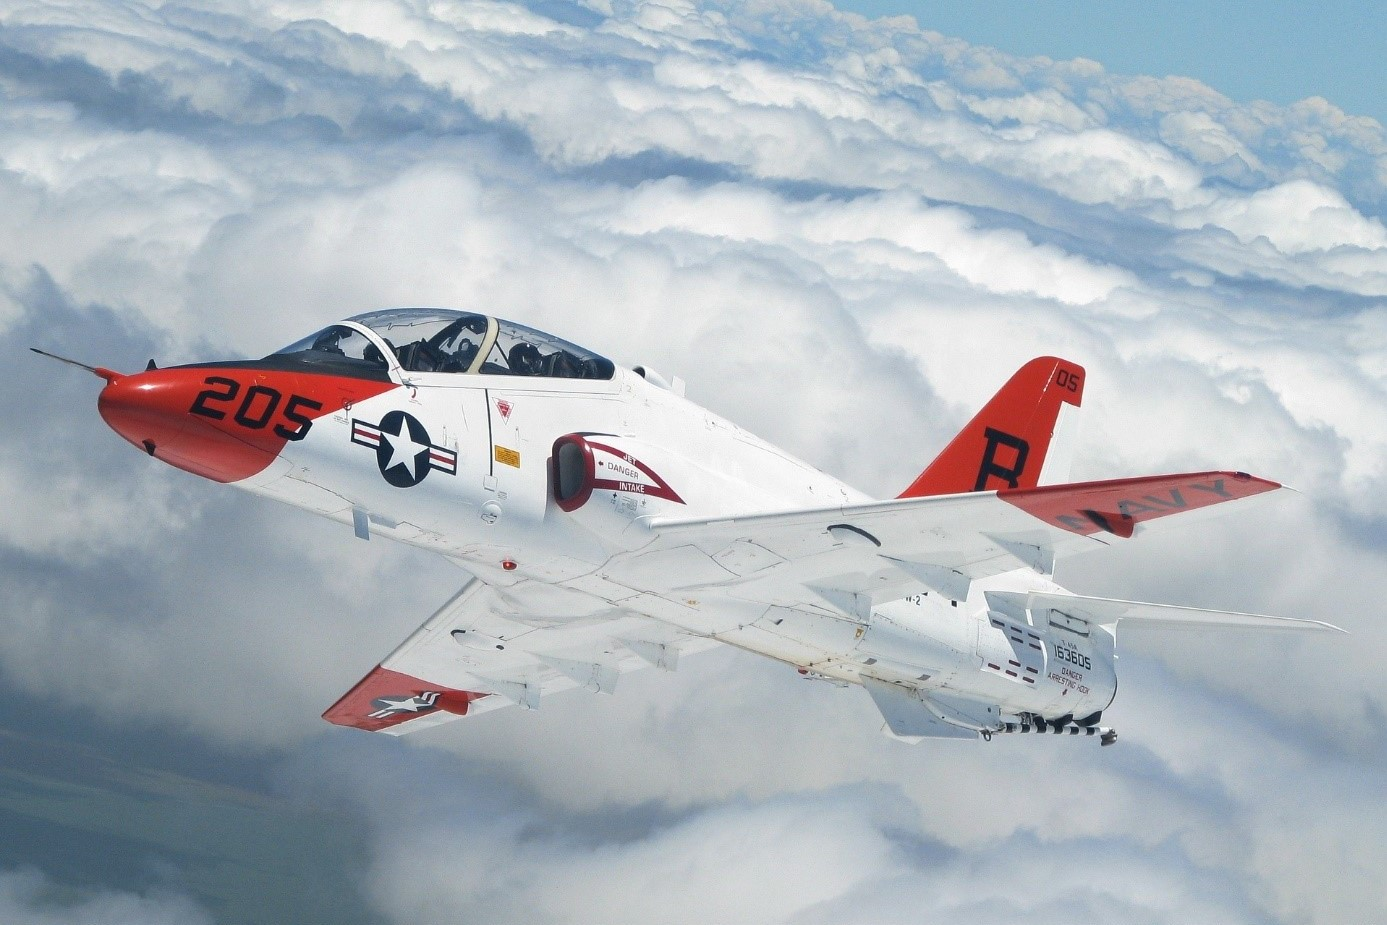 Cobham Mission Systems Wins NAVAIR Contract for T-45 Fleet-Wide Oxygen Concentrator